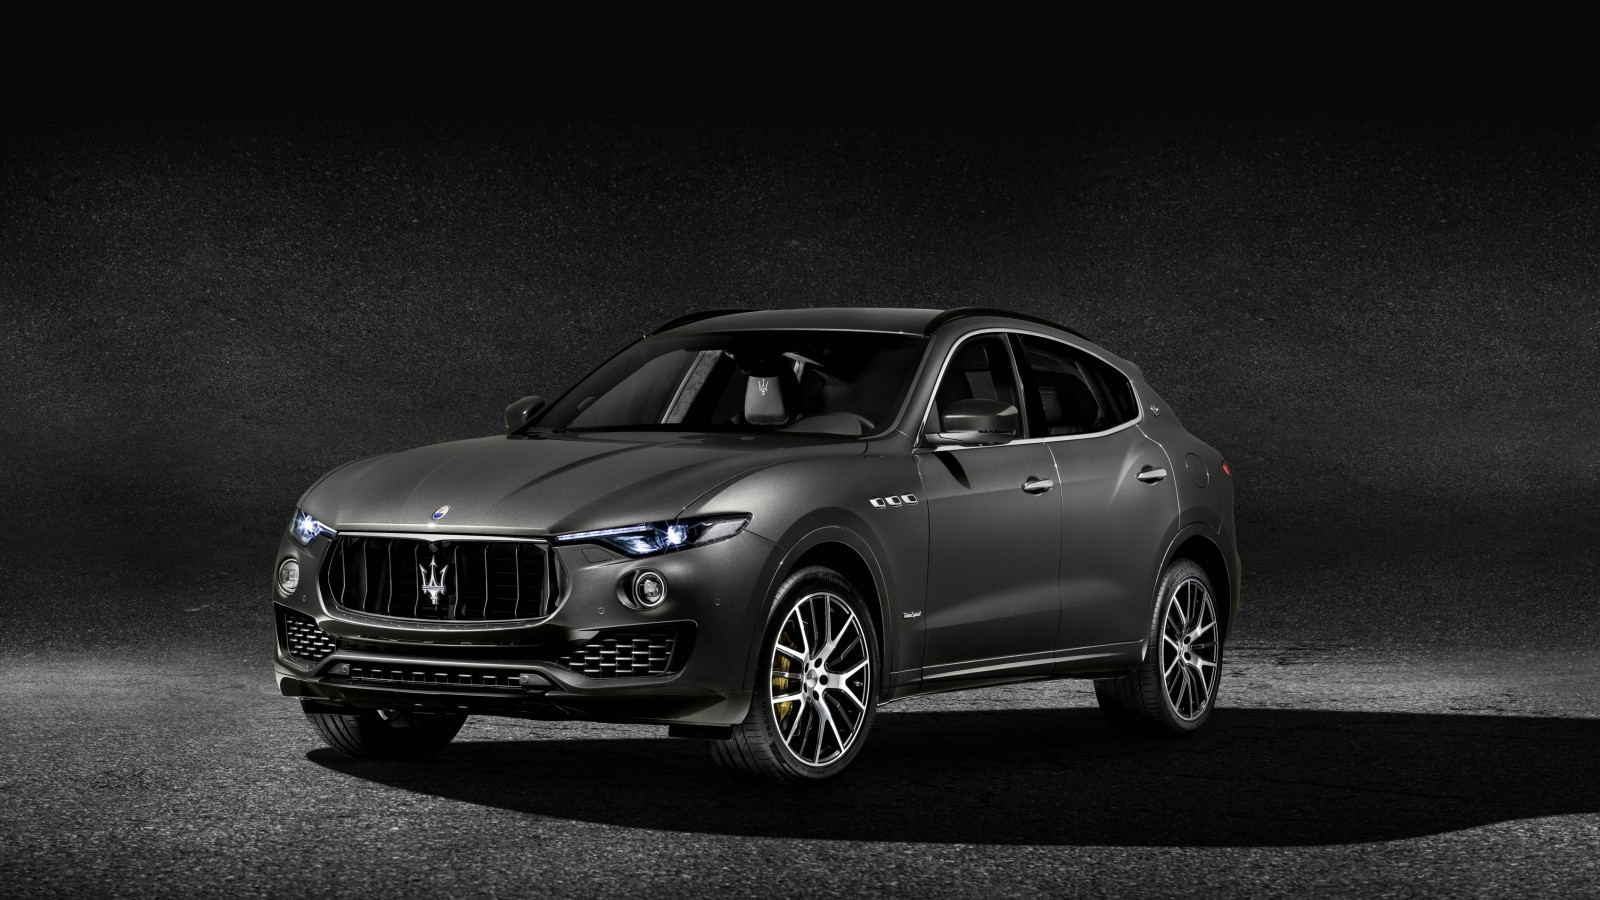 Maserati Car Hd Wallpaper Download 2018 Maserati Levante S Q4 Gransport Wallpaper Hd Car